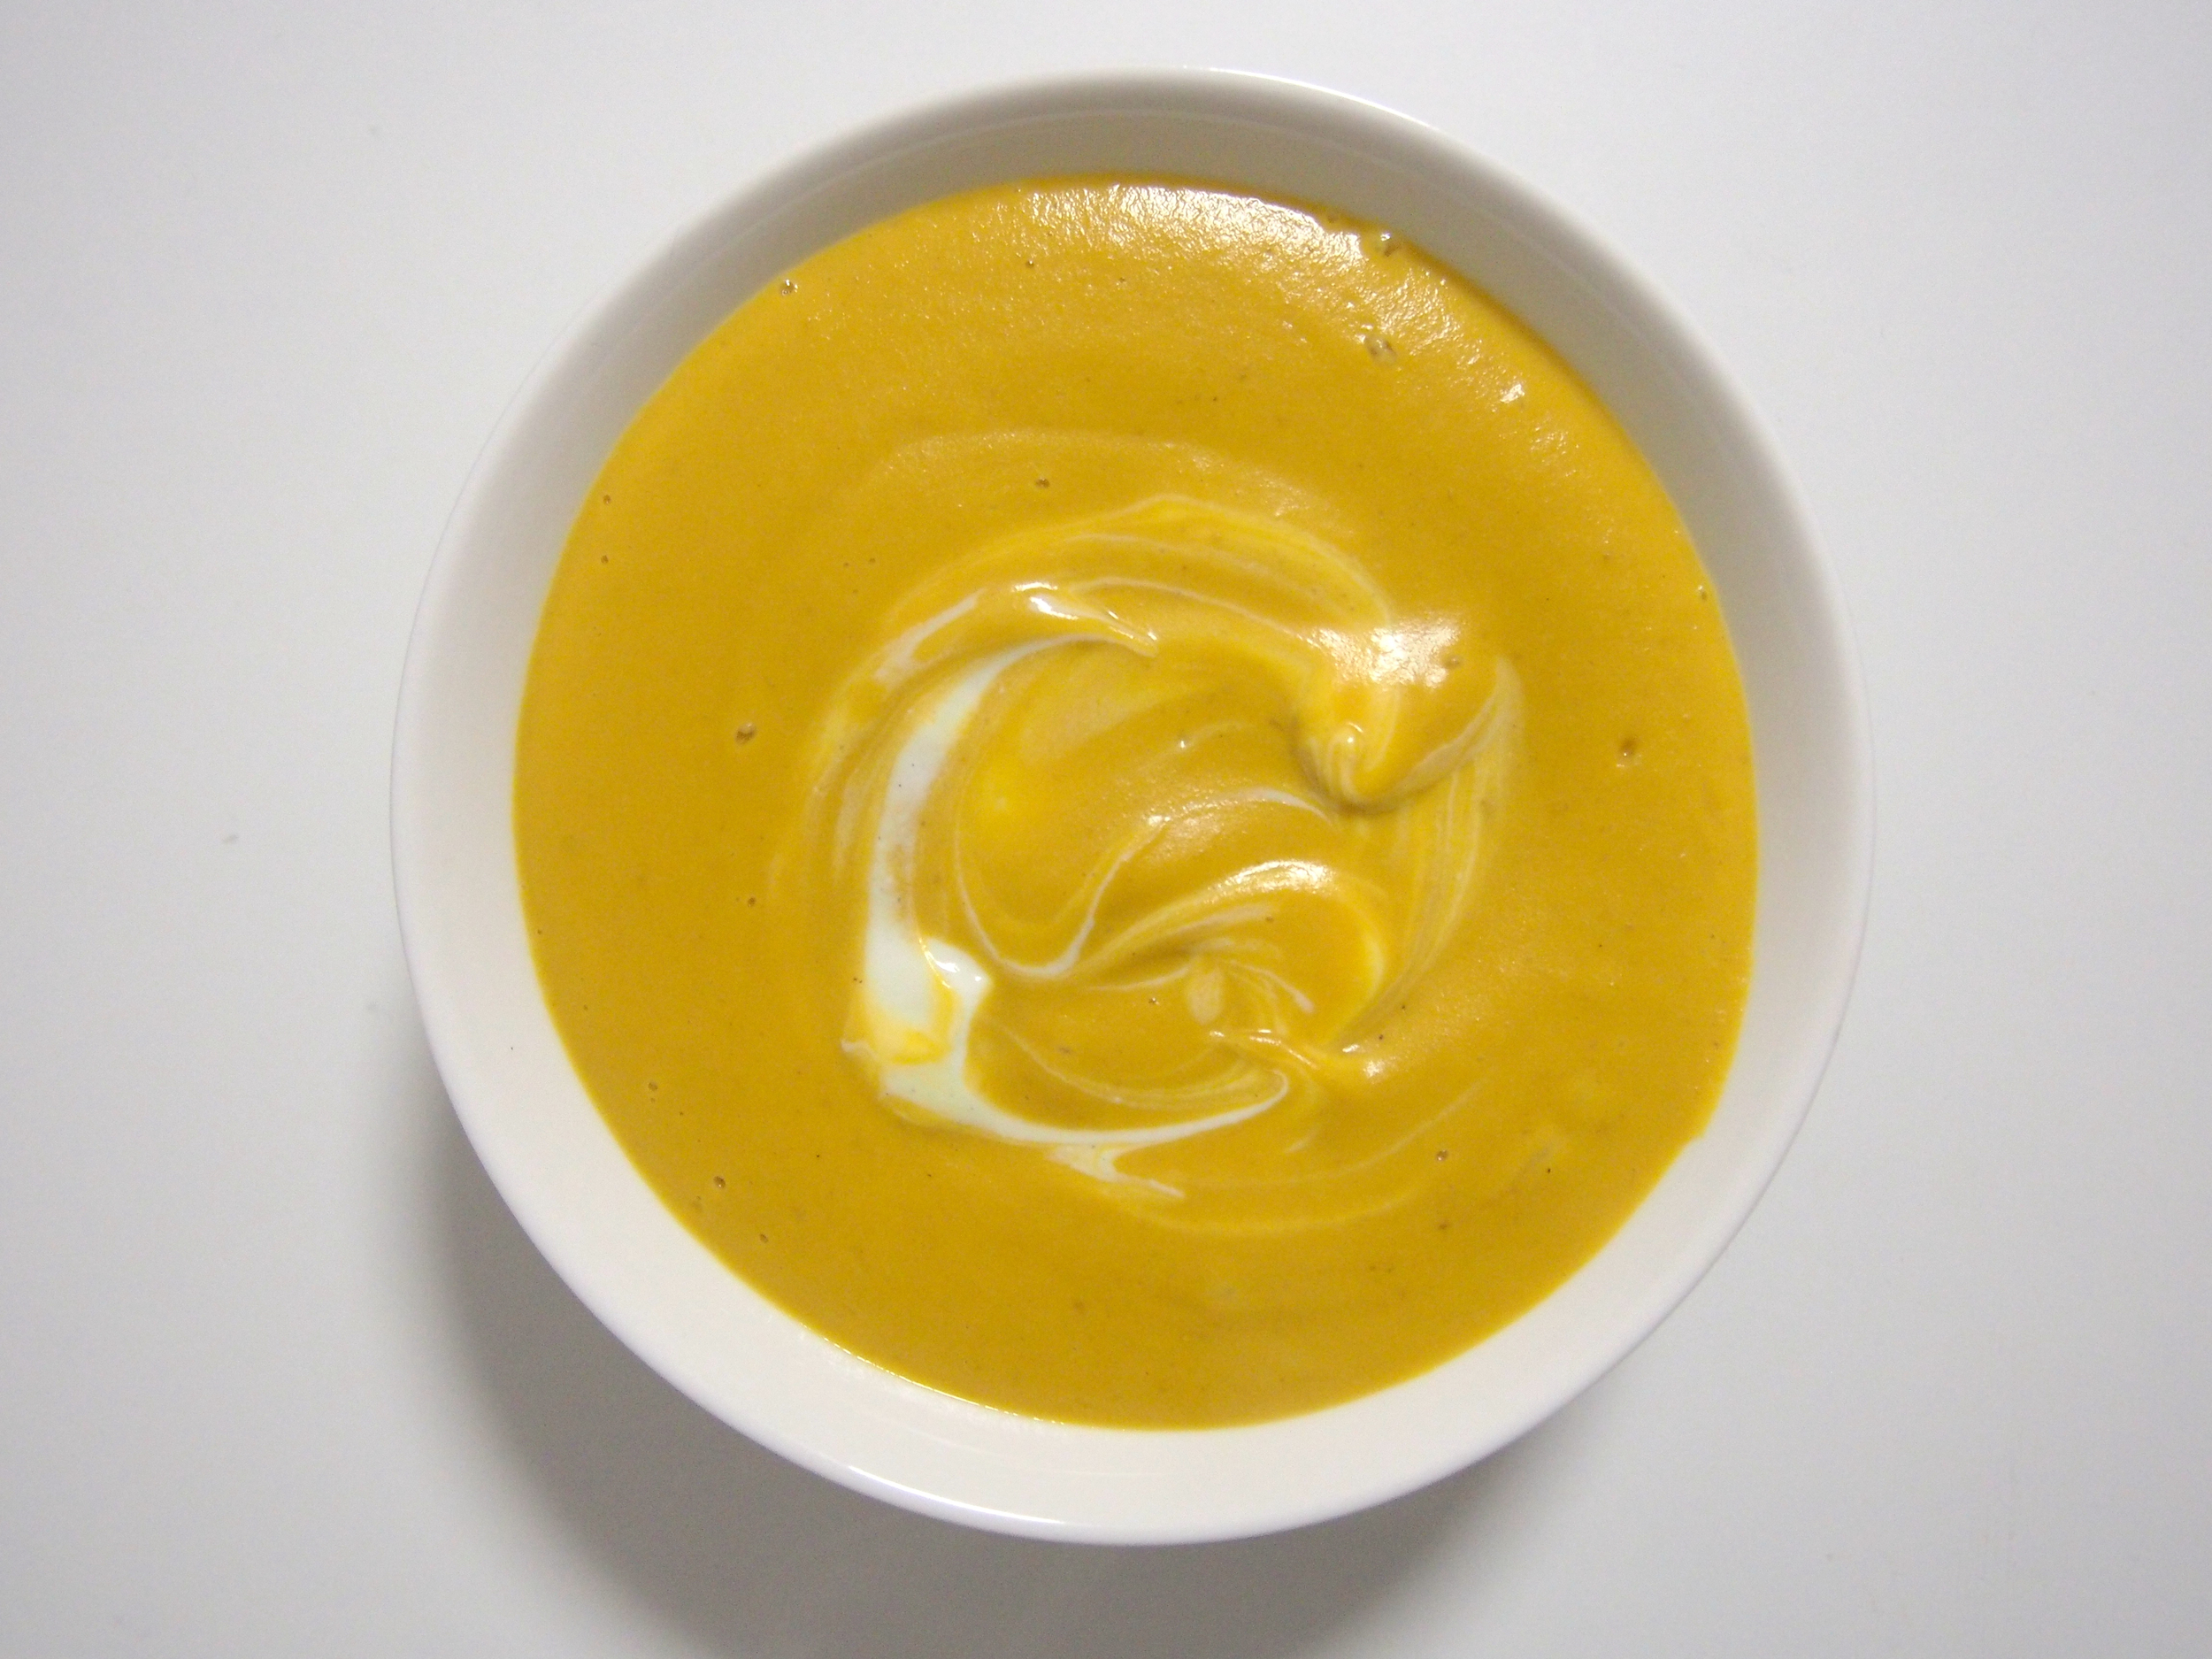 Voila! It's luxuriously thick and creamy - just how pumpkin soup should be!